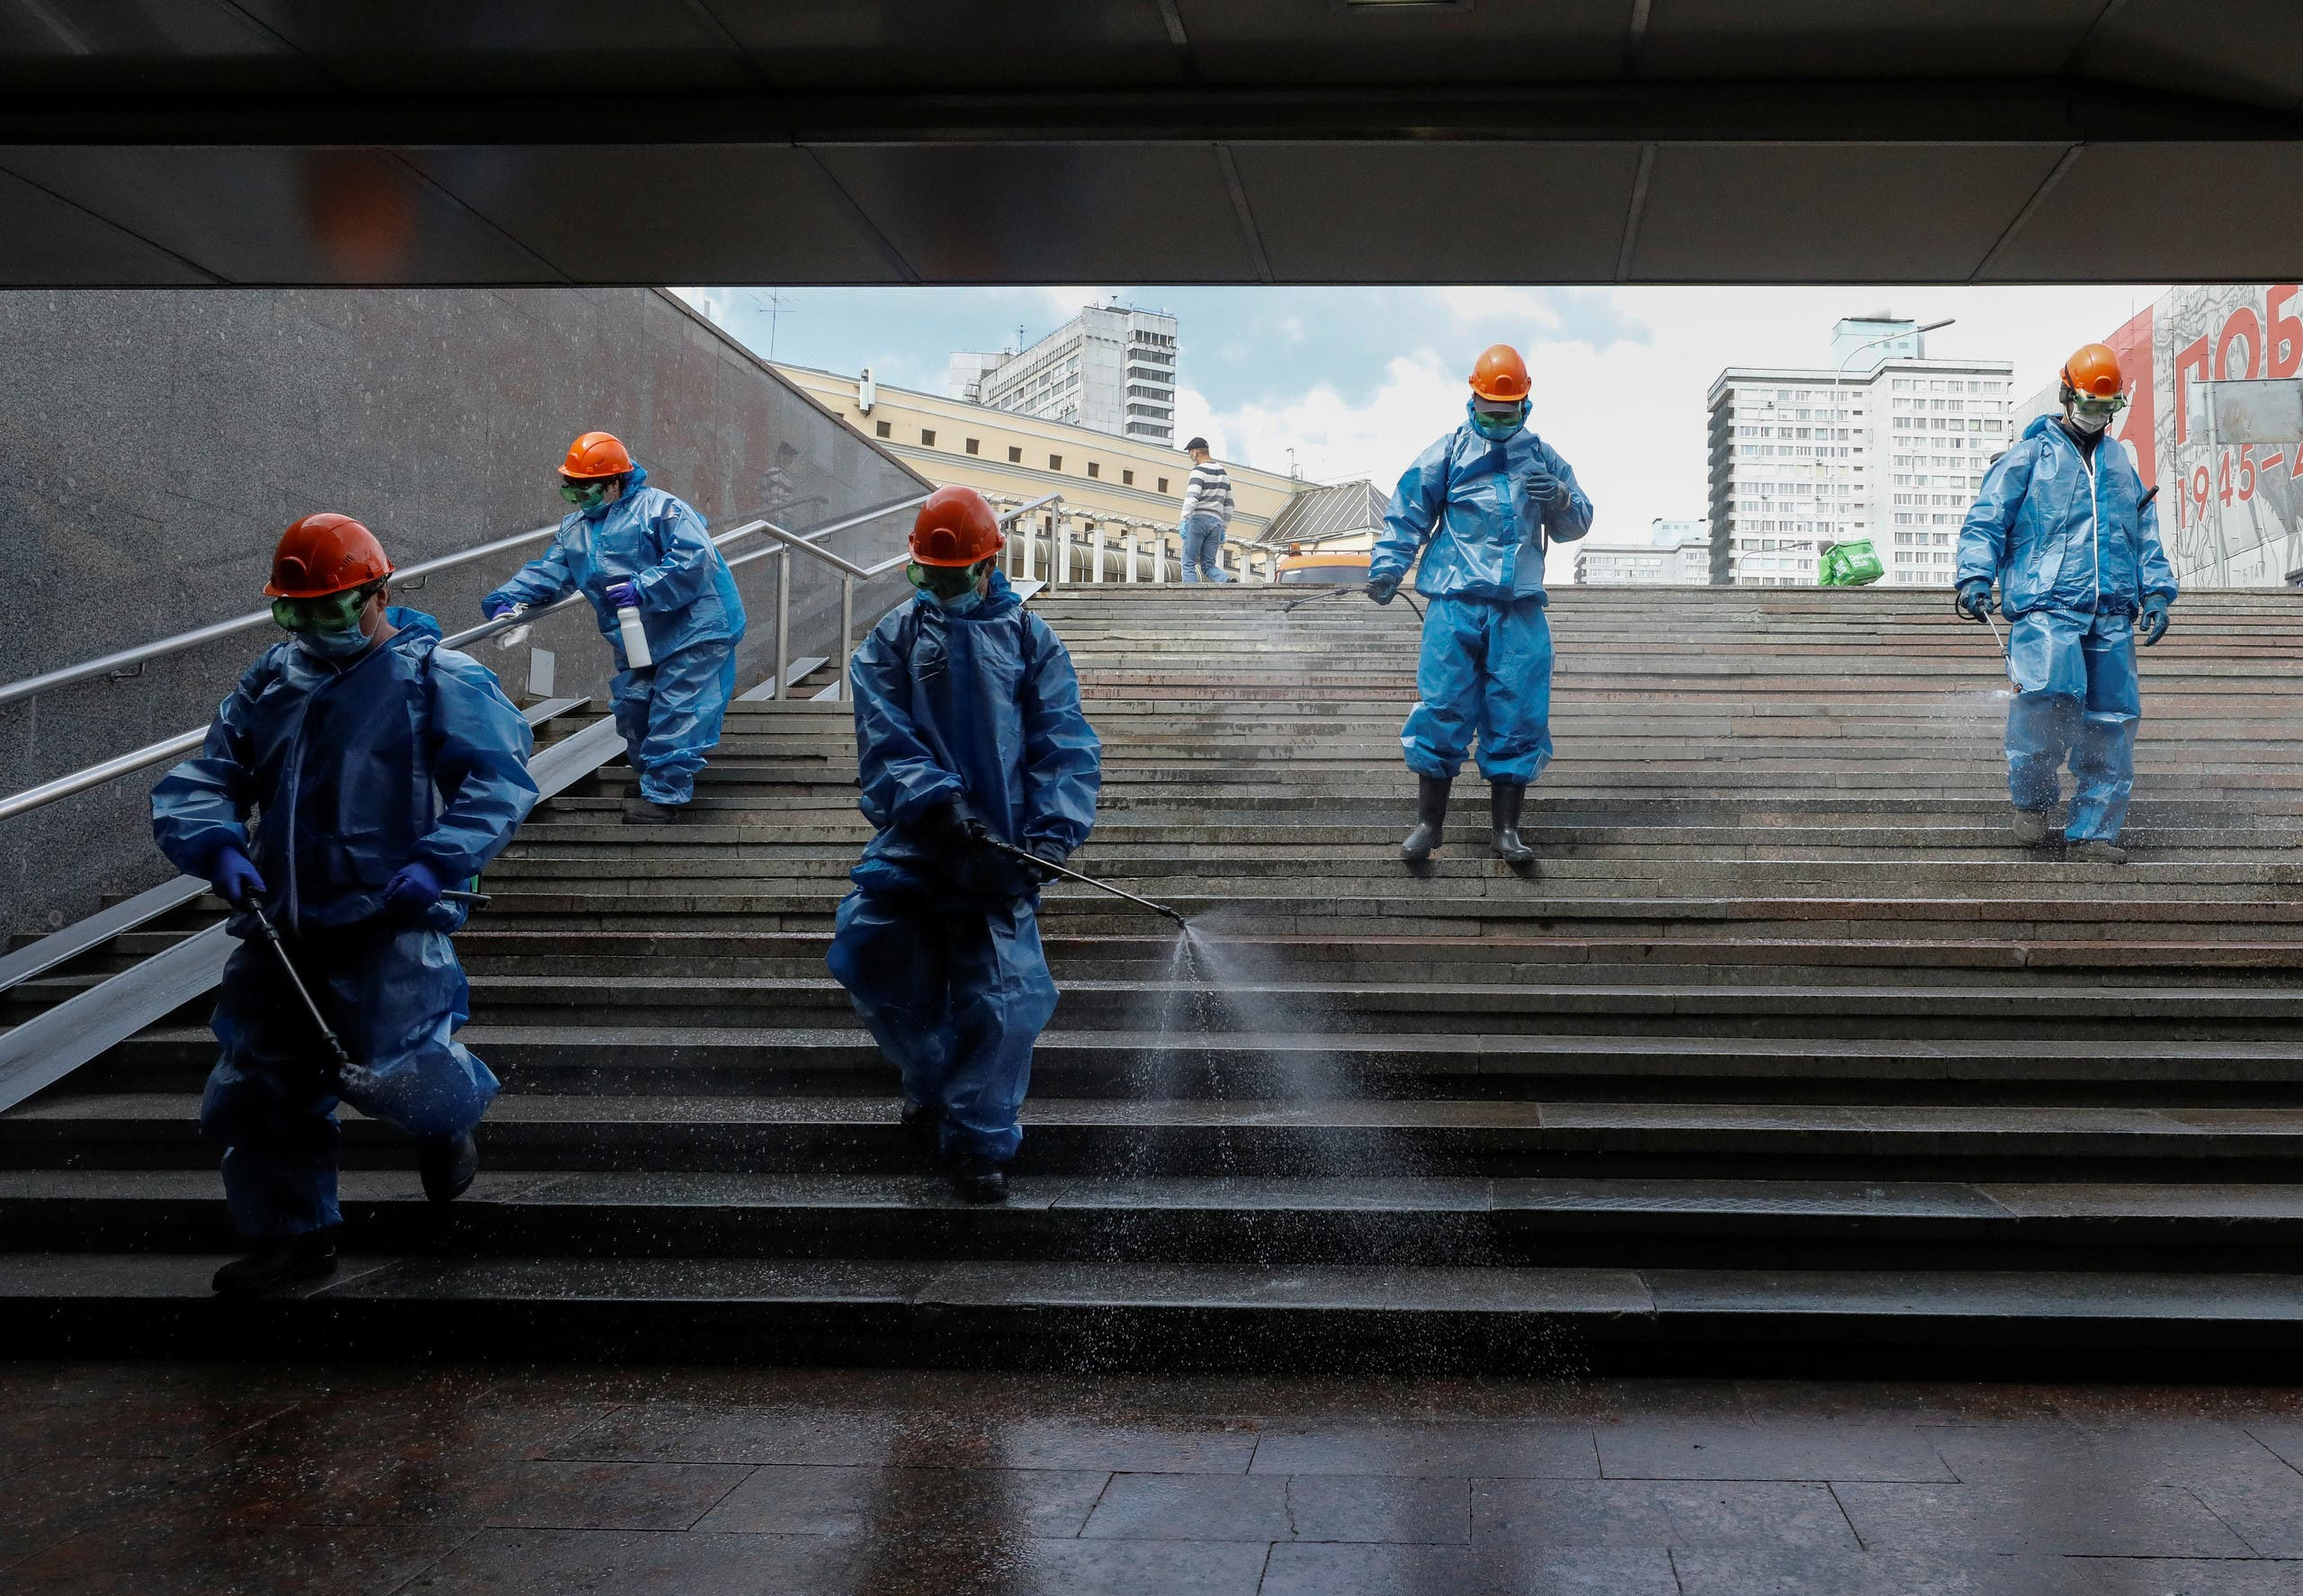 Specialists wearing protective gear spray disinfectant while sanitizing an underground passage amid the outbreak of the coronavirus disease (COVID-19) in Moscow, Russia May 16, 2020. (Reuters)